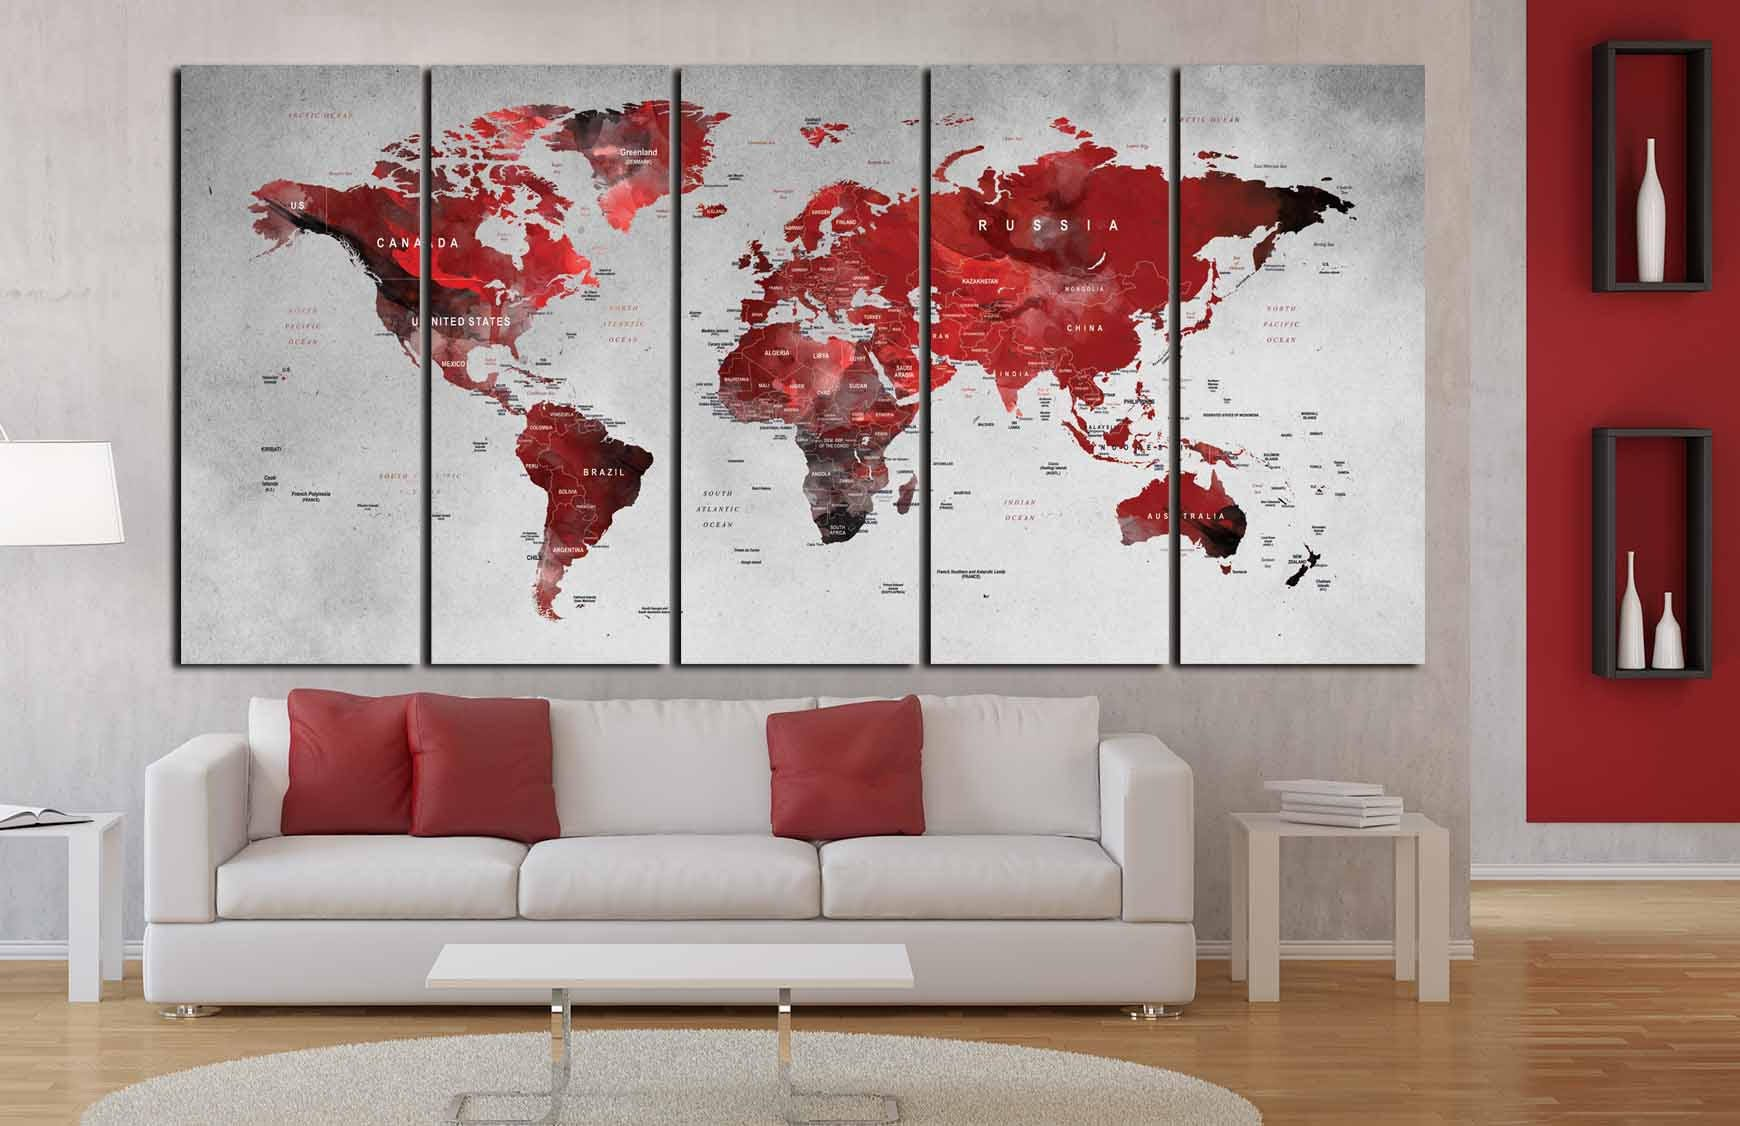 World map wall artworld map canvasworld map art printlarge world map wall artworld map canvasworld map art printlarge world mapworld map abstractred world map artworld map push pintravel map gumiabroncs Gallery